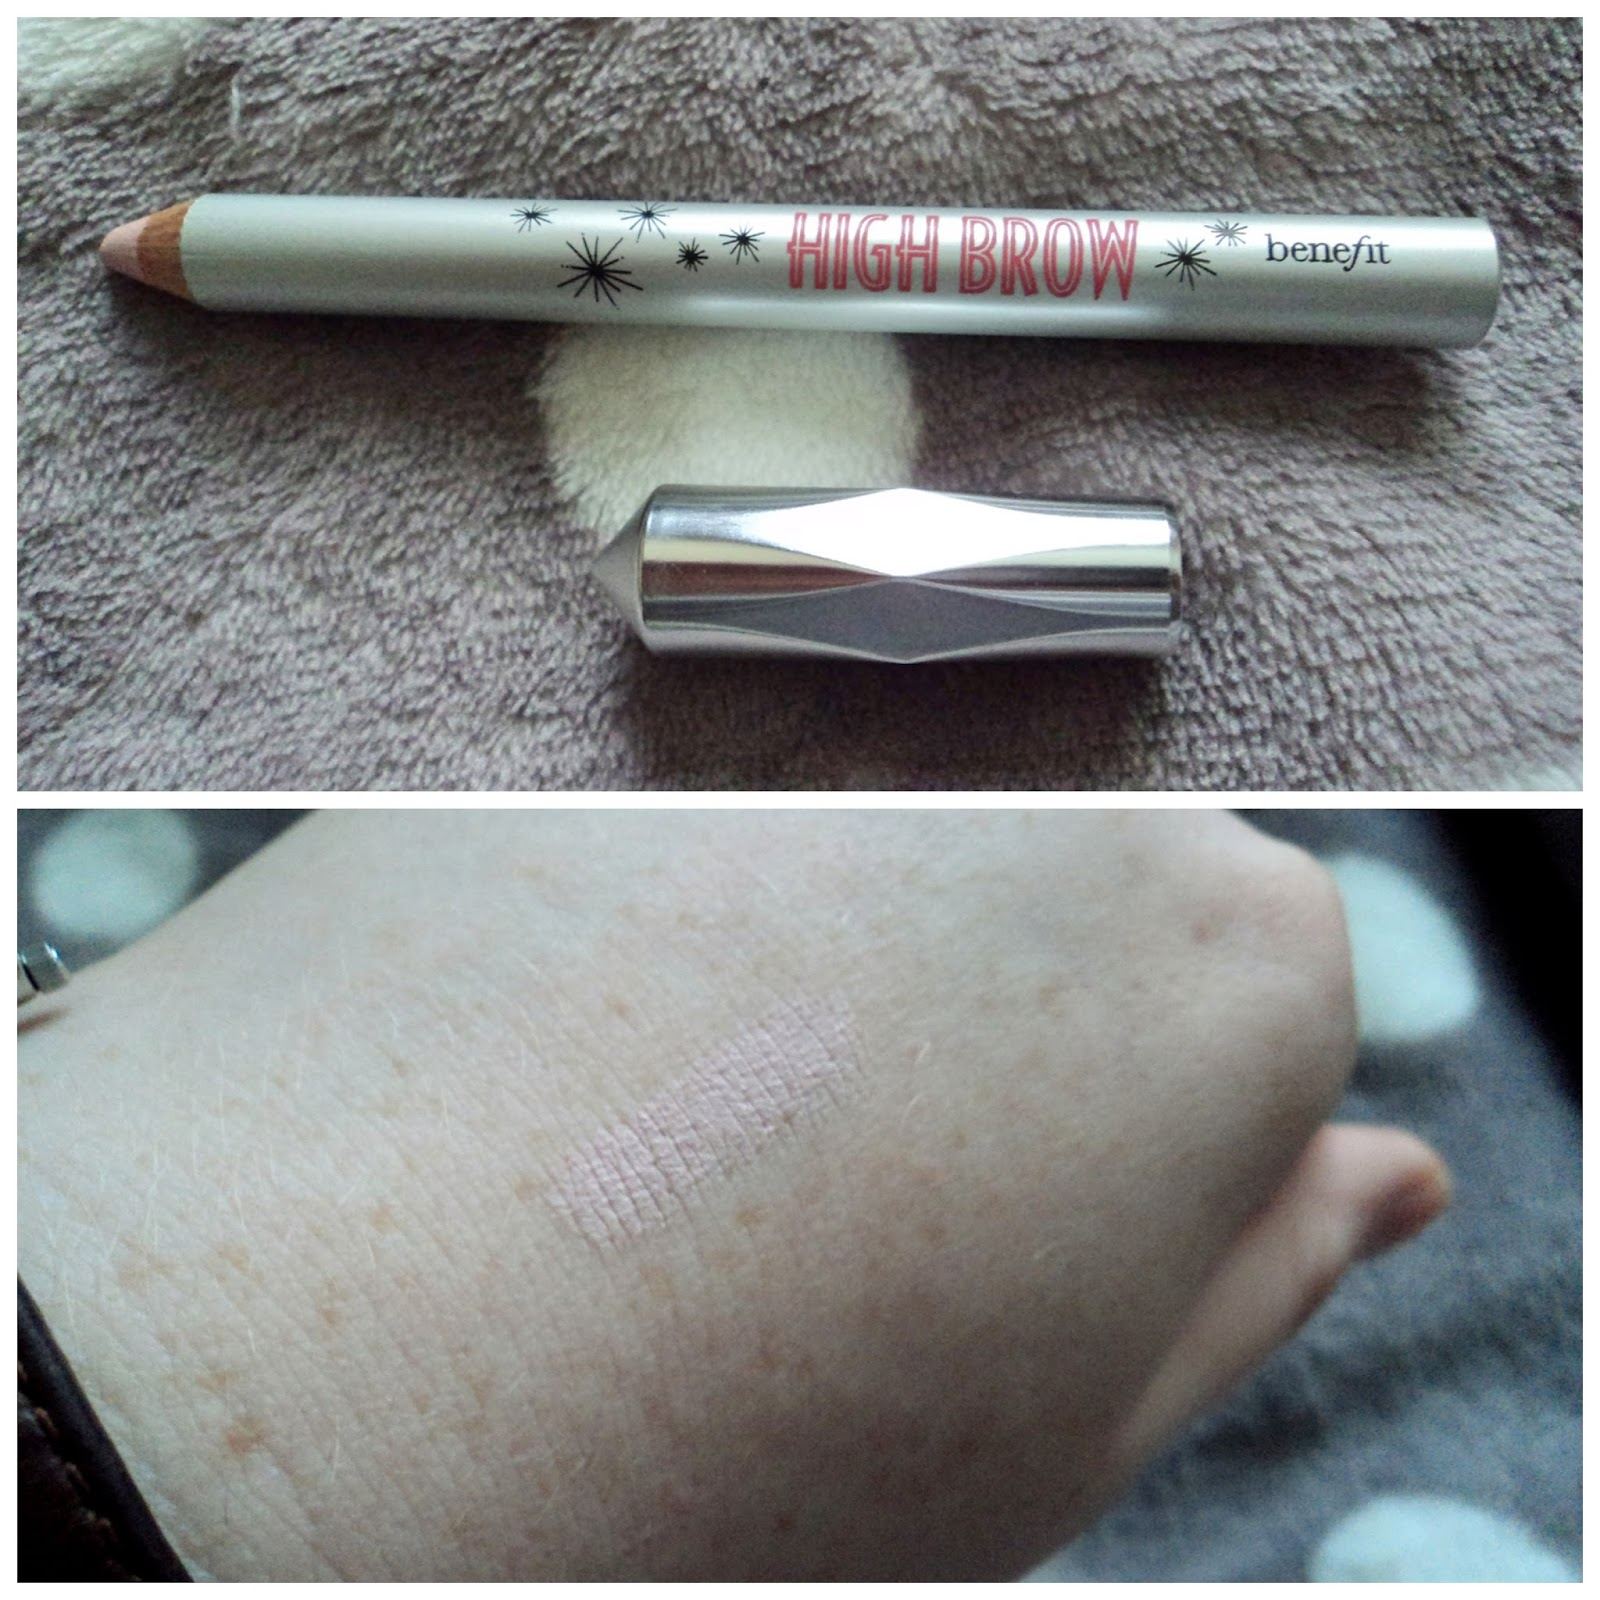 Benefit High Brow Review